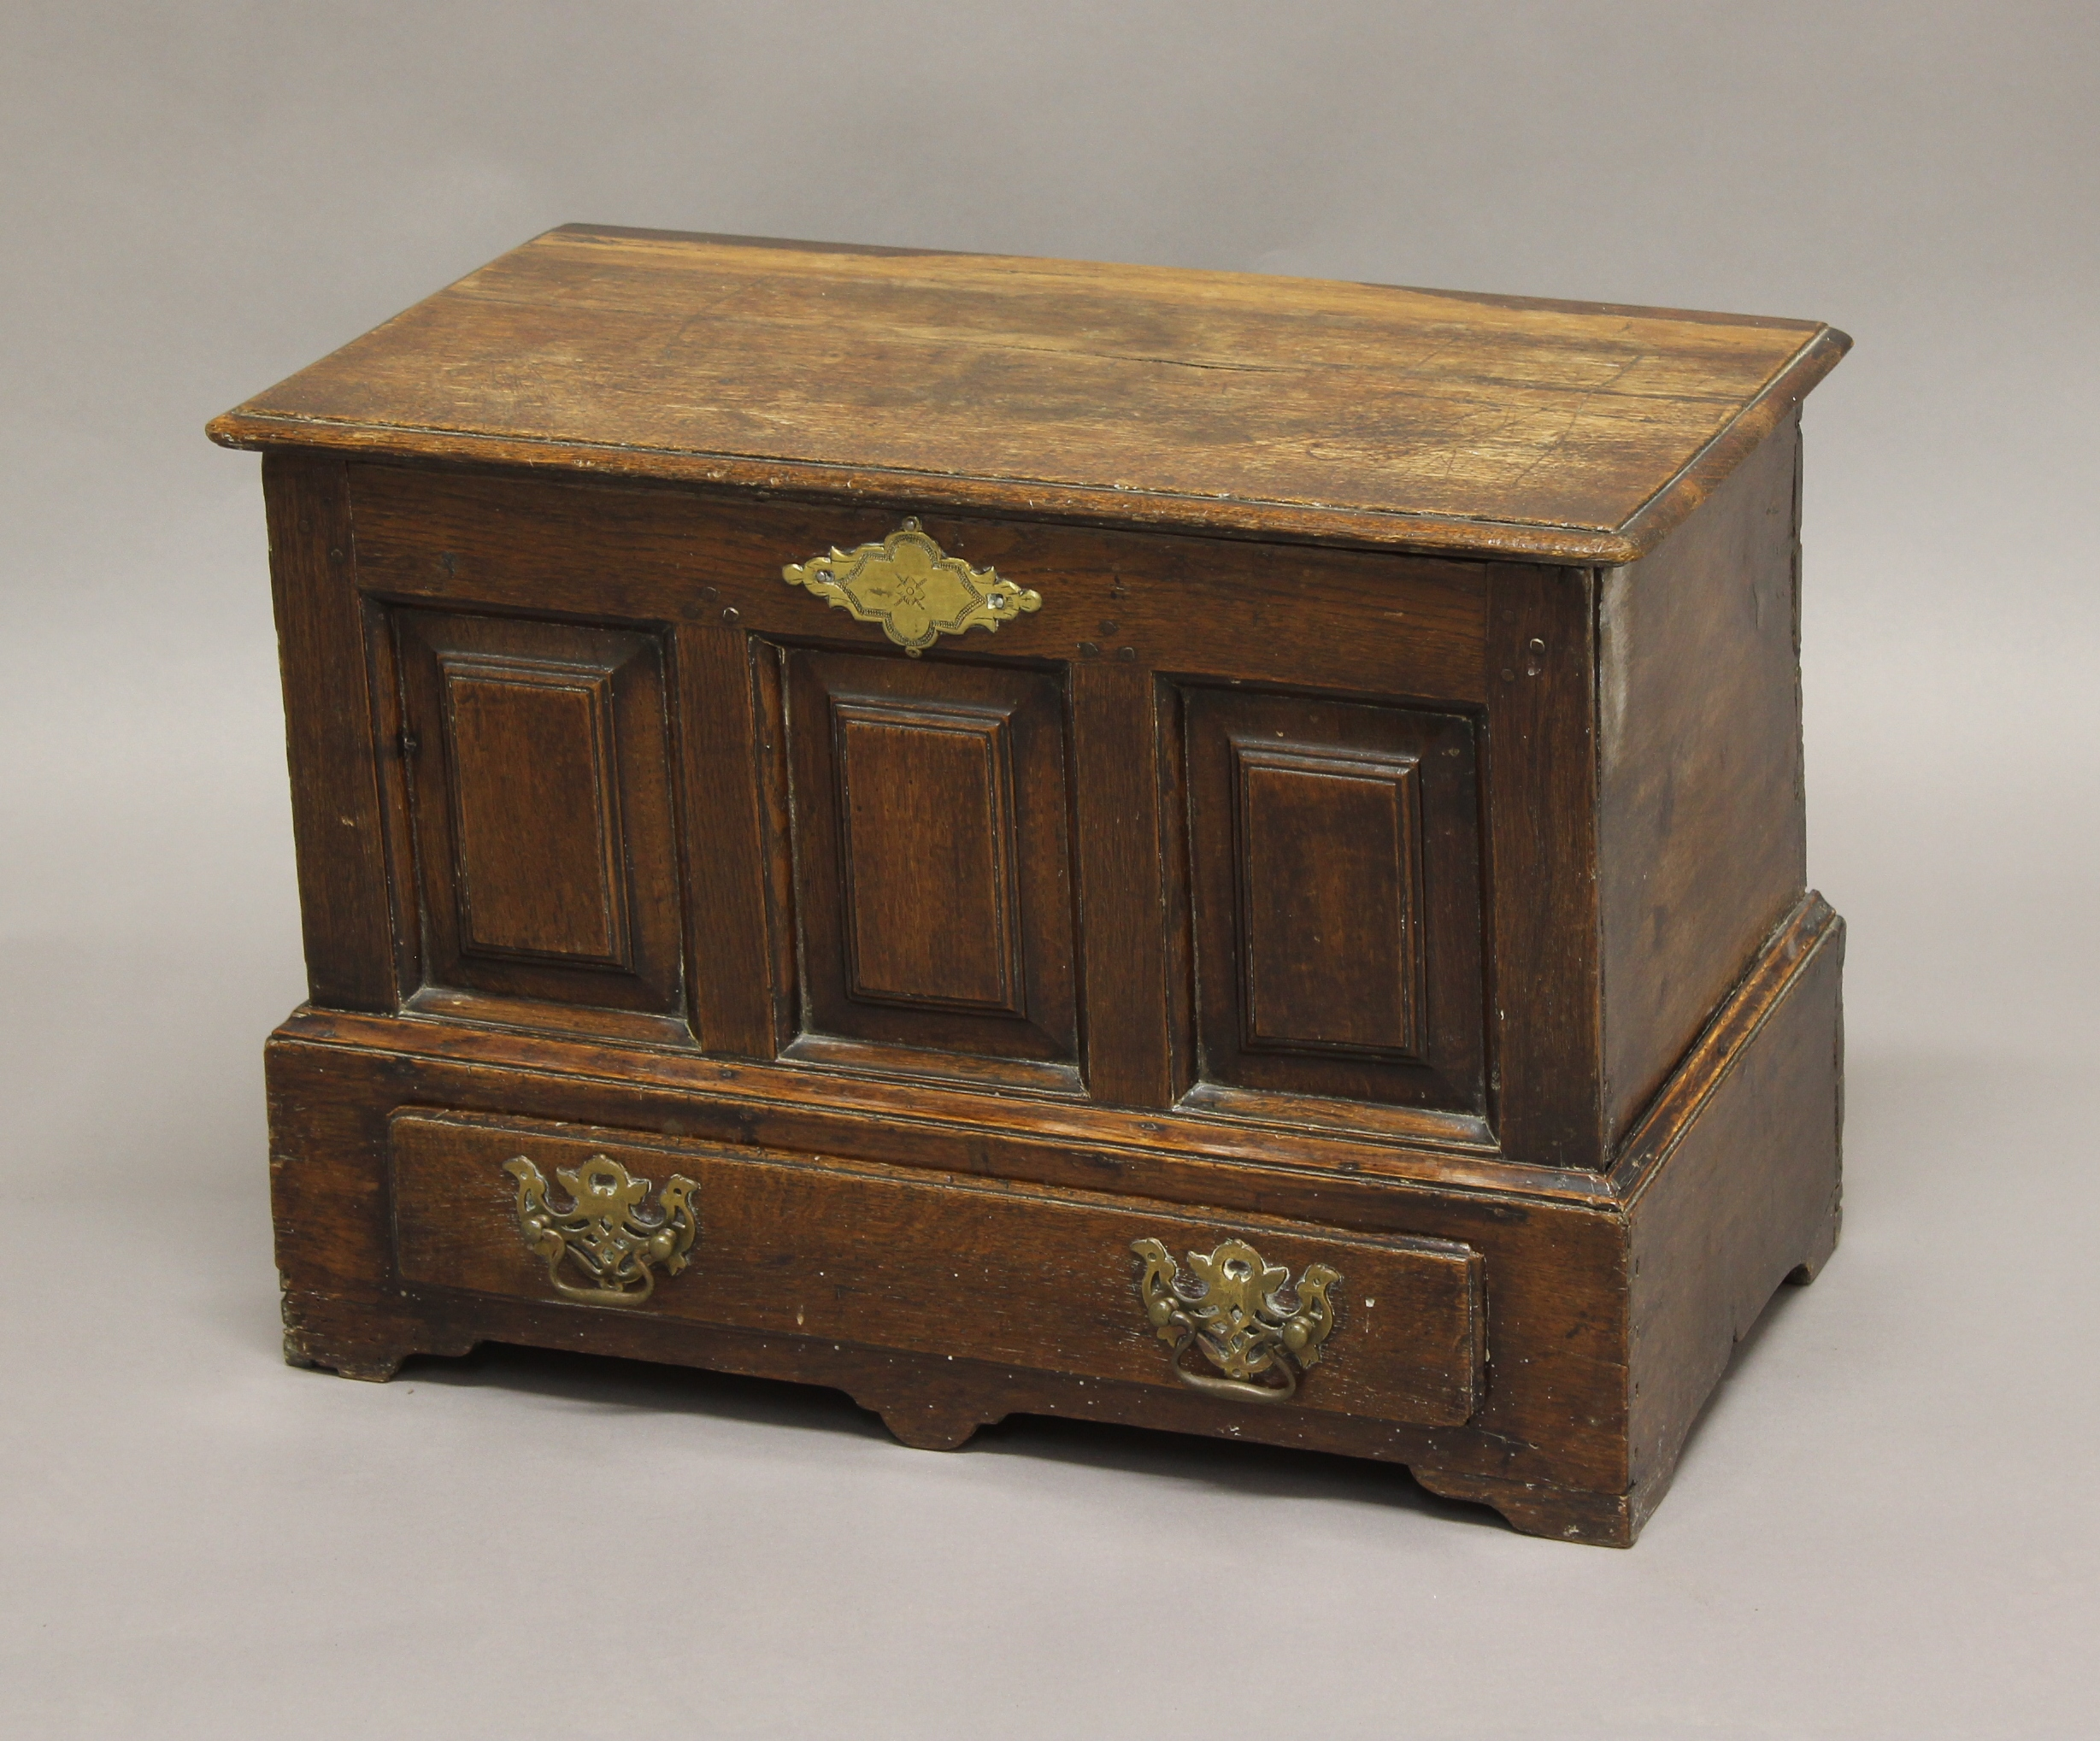 A SMALL WELSH OAK MARRIAGE CHEST, 18th century, the panelled front above single drawer